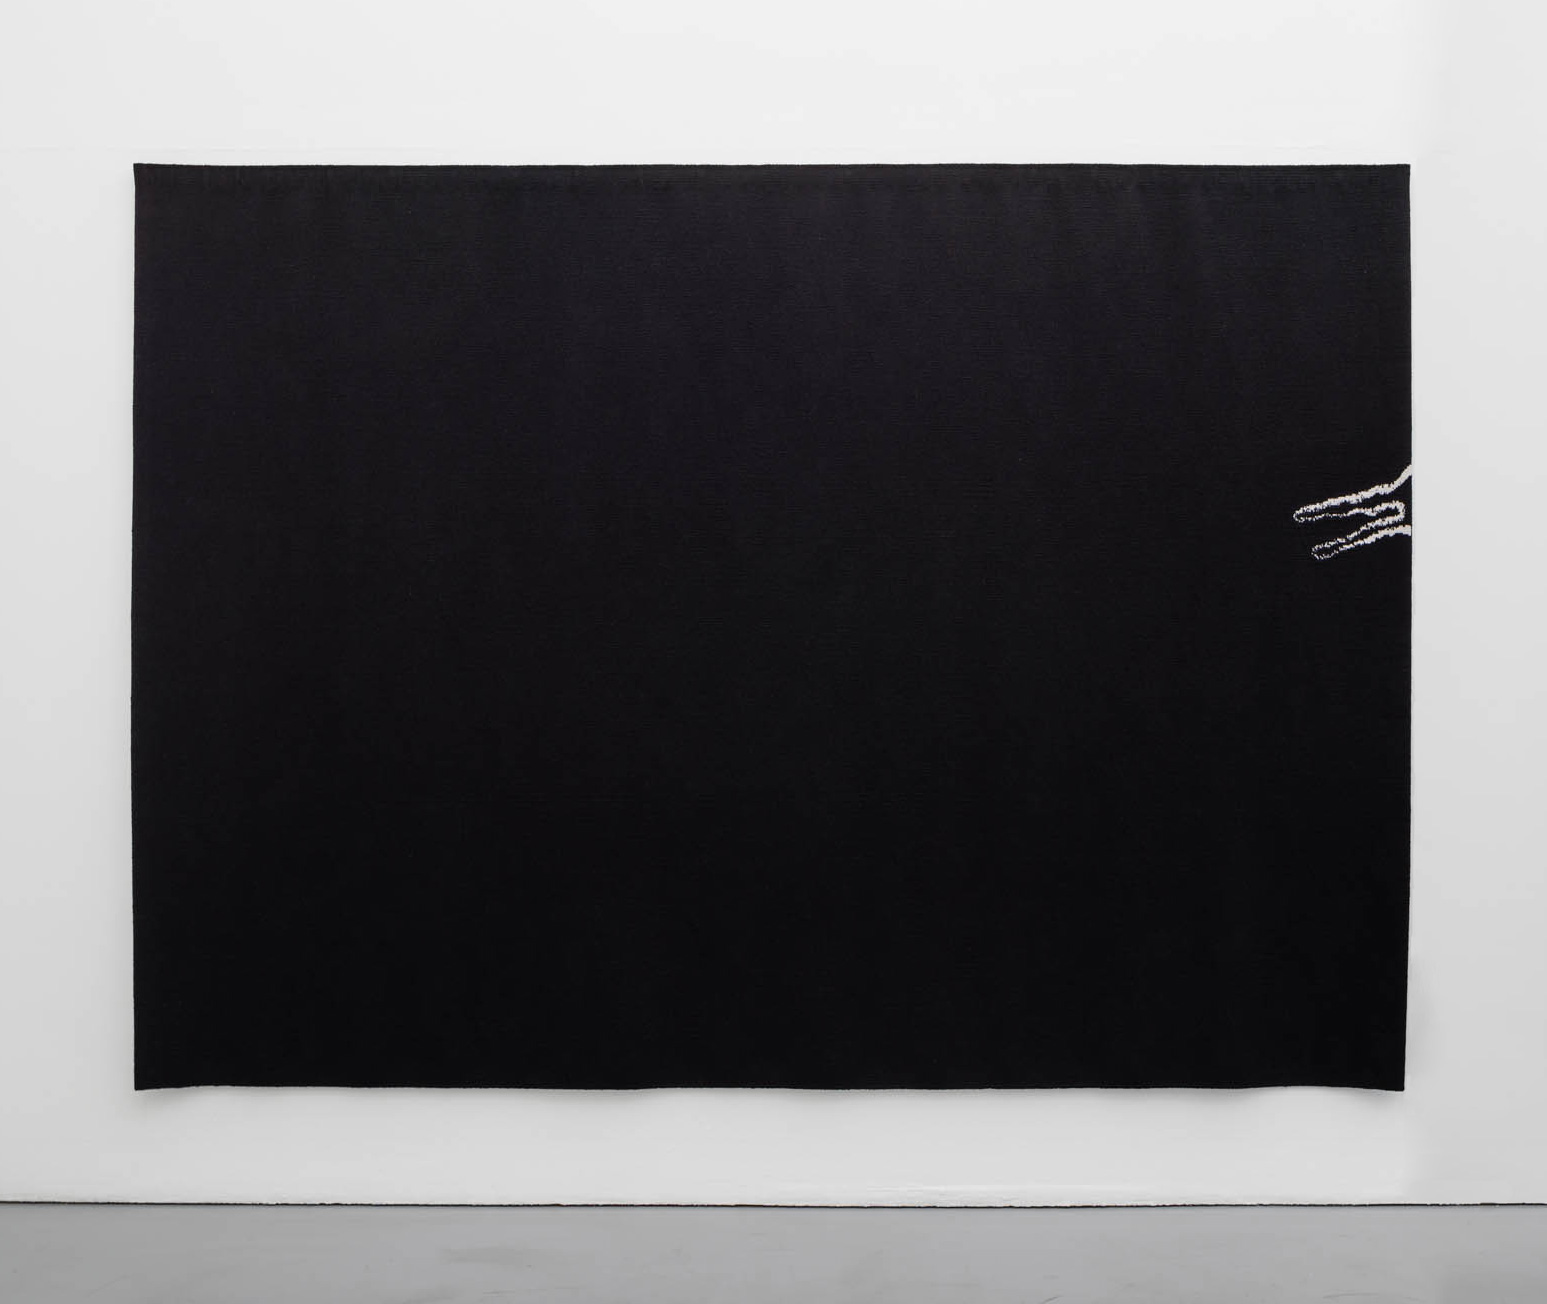 Jan Groth, Sign, 1975-76, tapestry woven in collaboration with Benedikte Groth, 220 x 305 cm